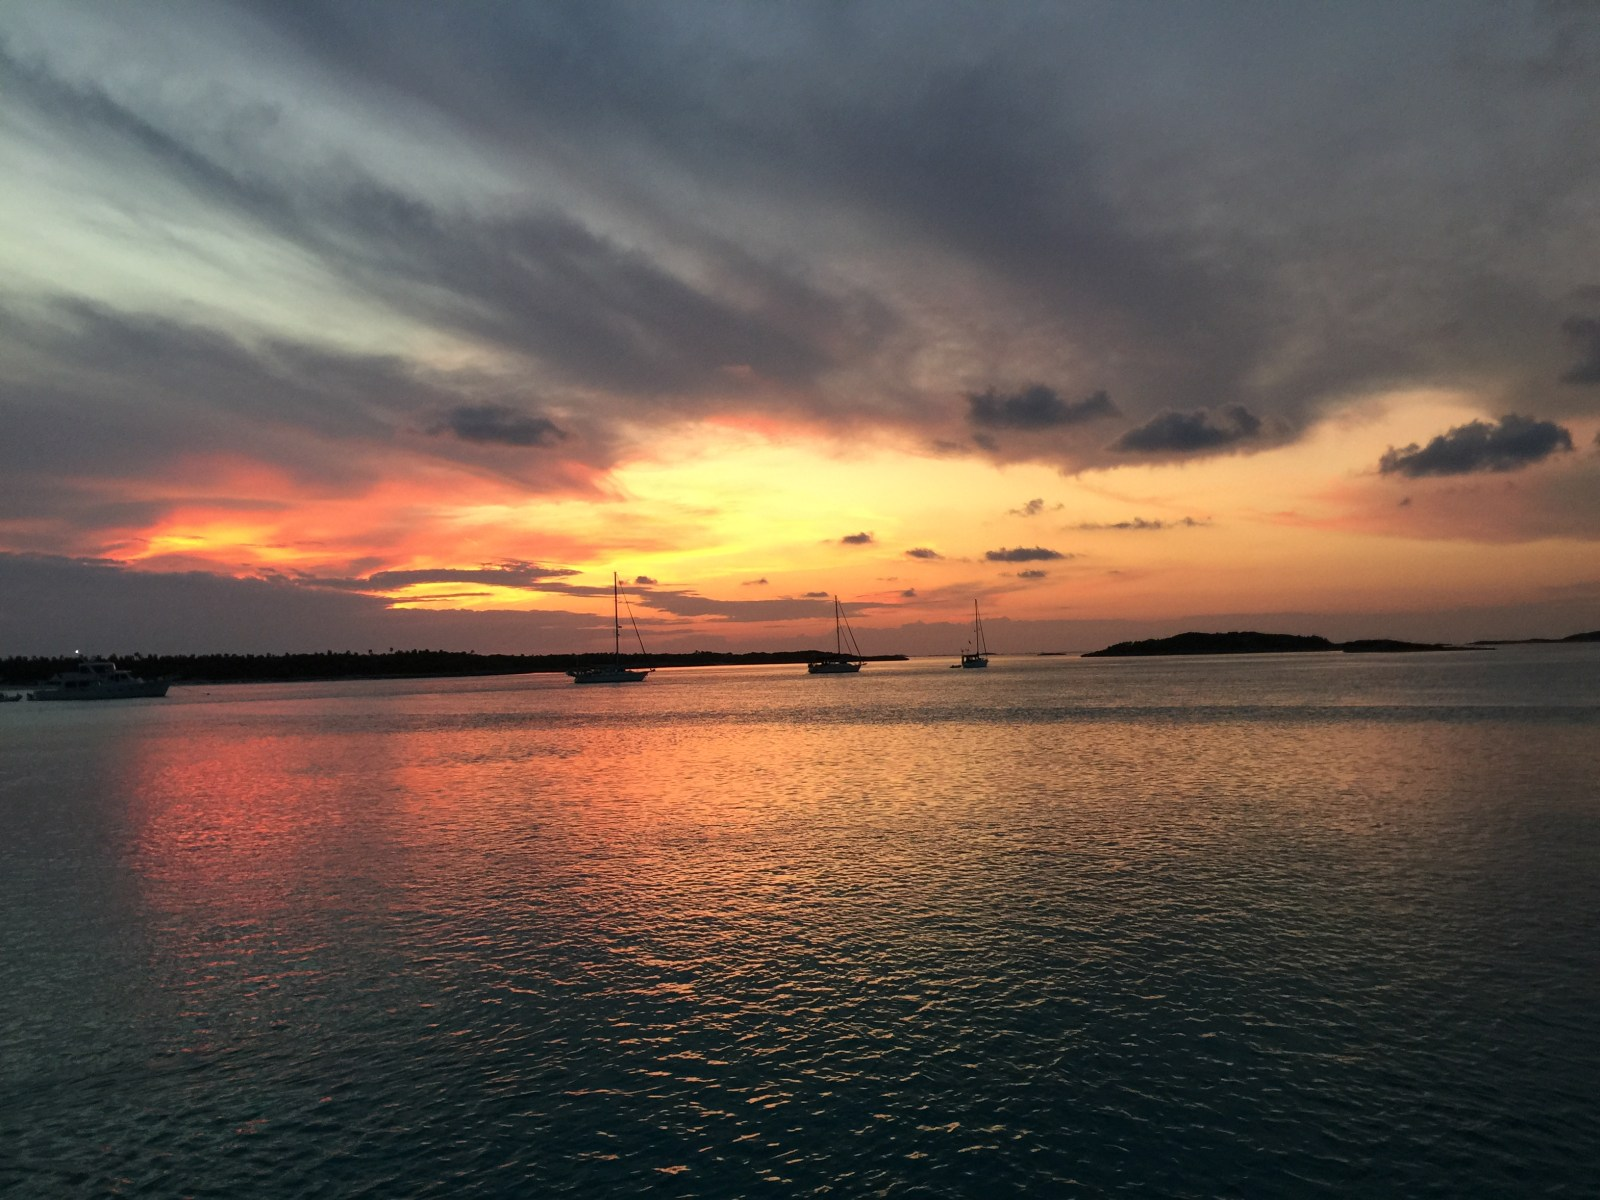 sunset-over-water